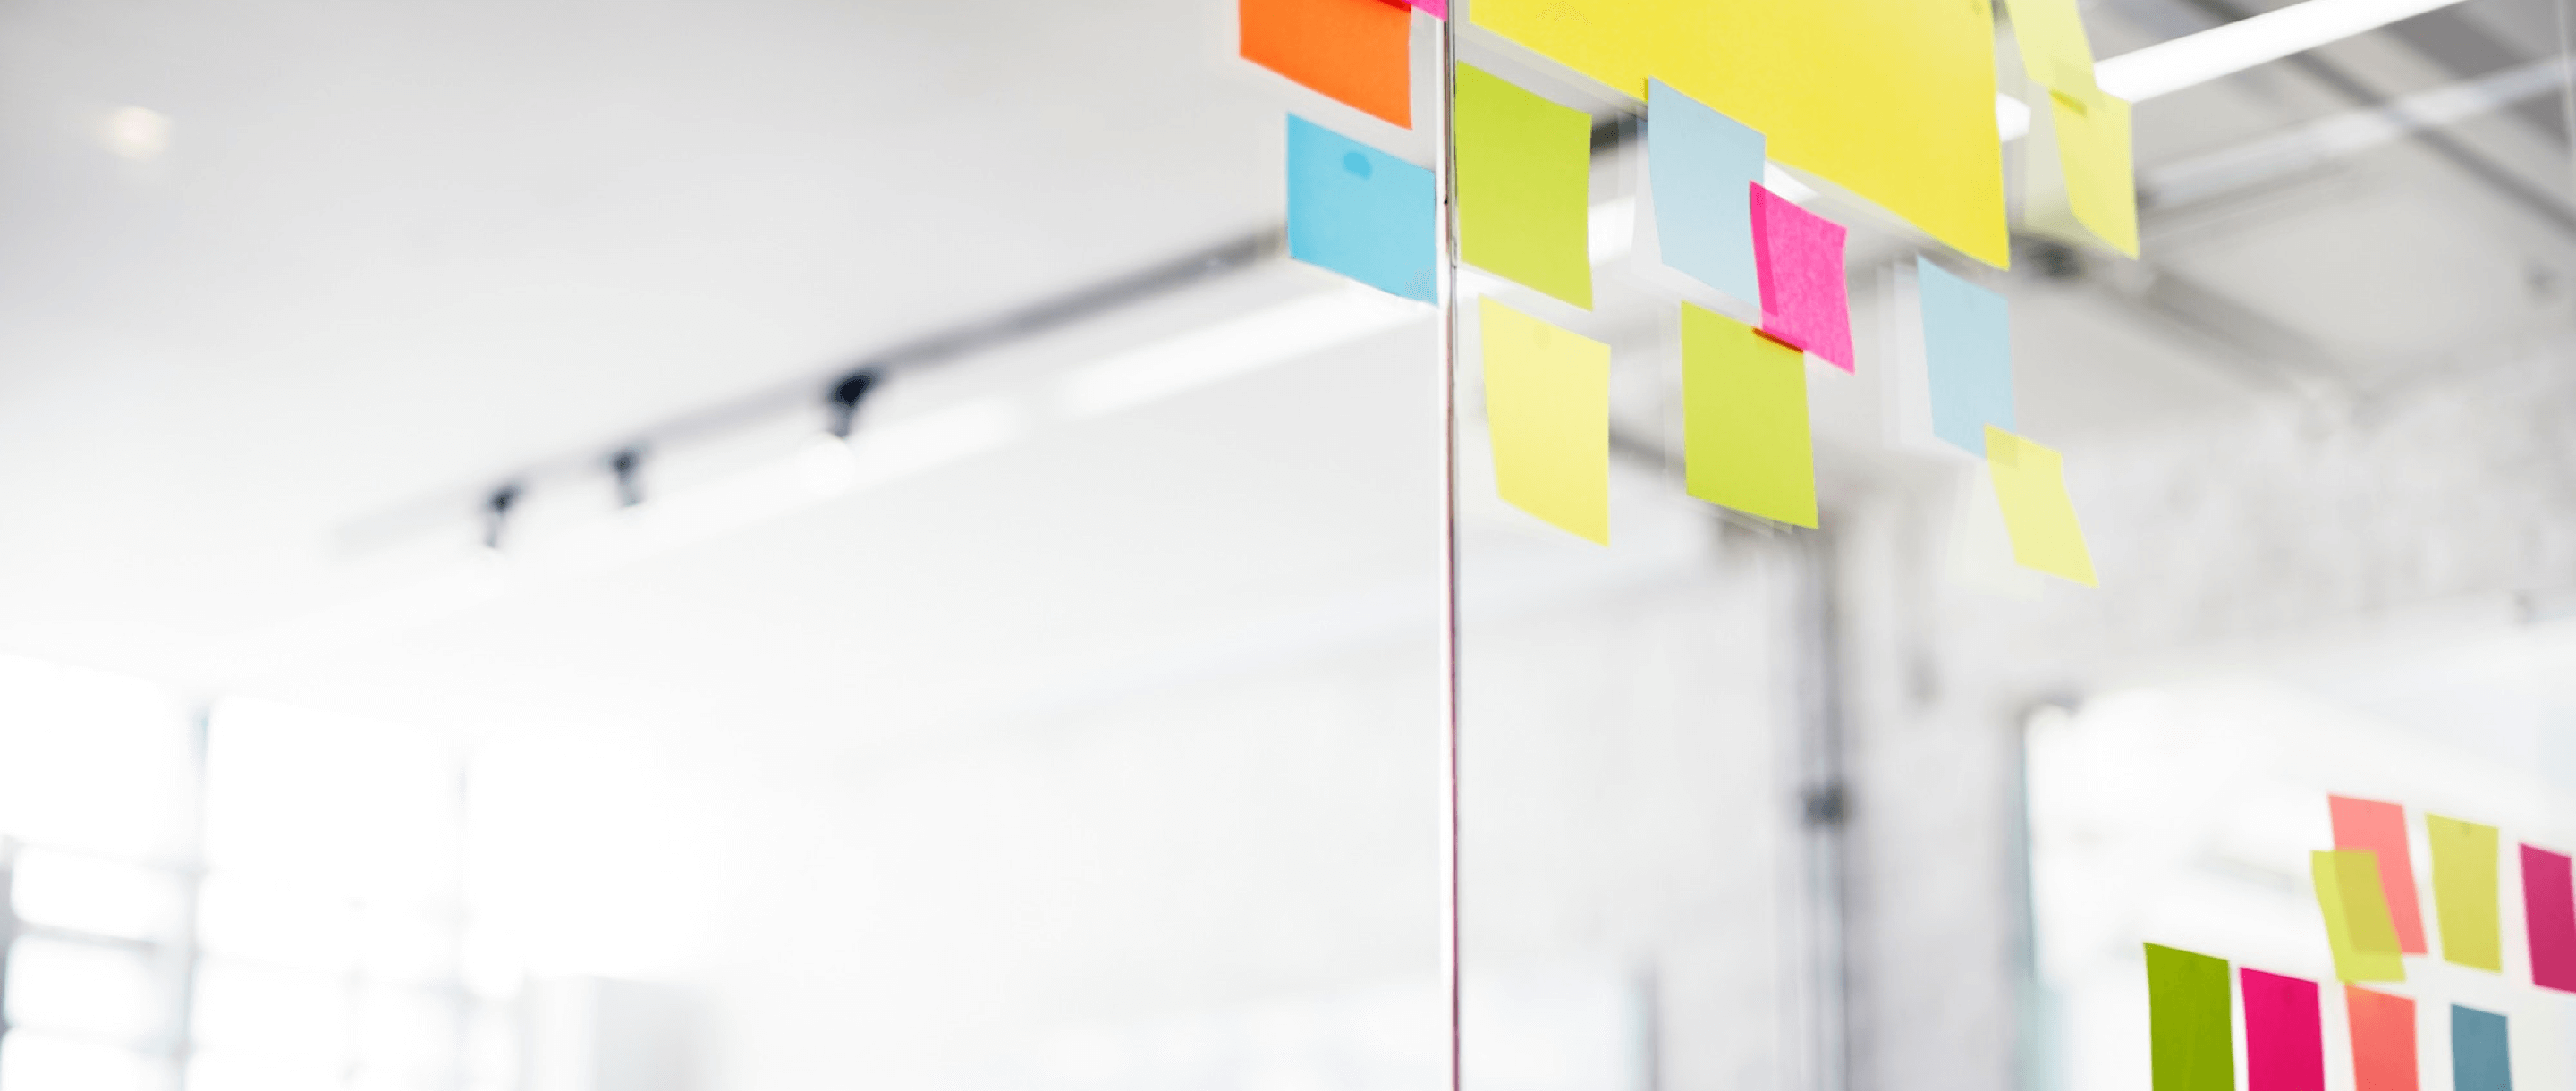 Picture of colourful post-it notes stuck onto a glass window